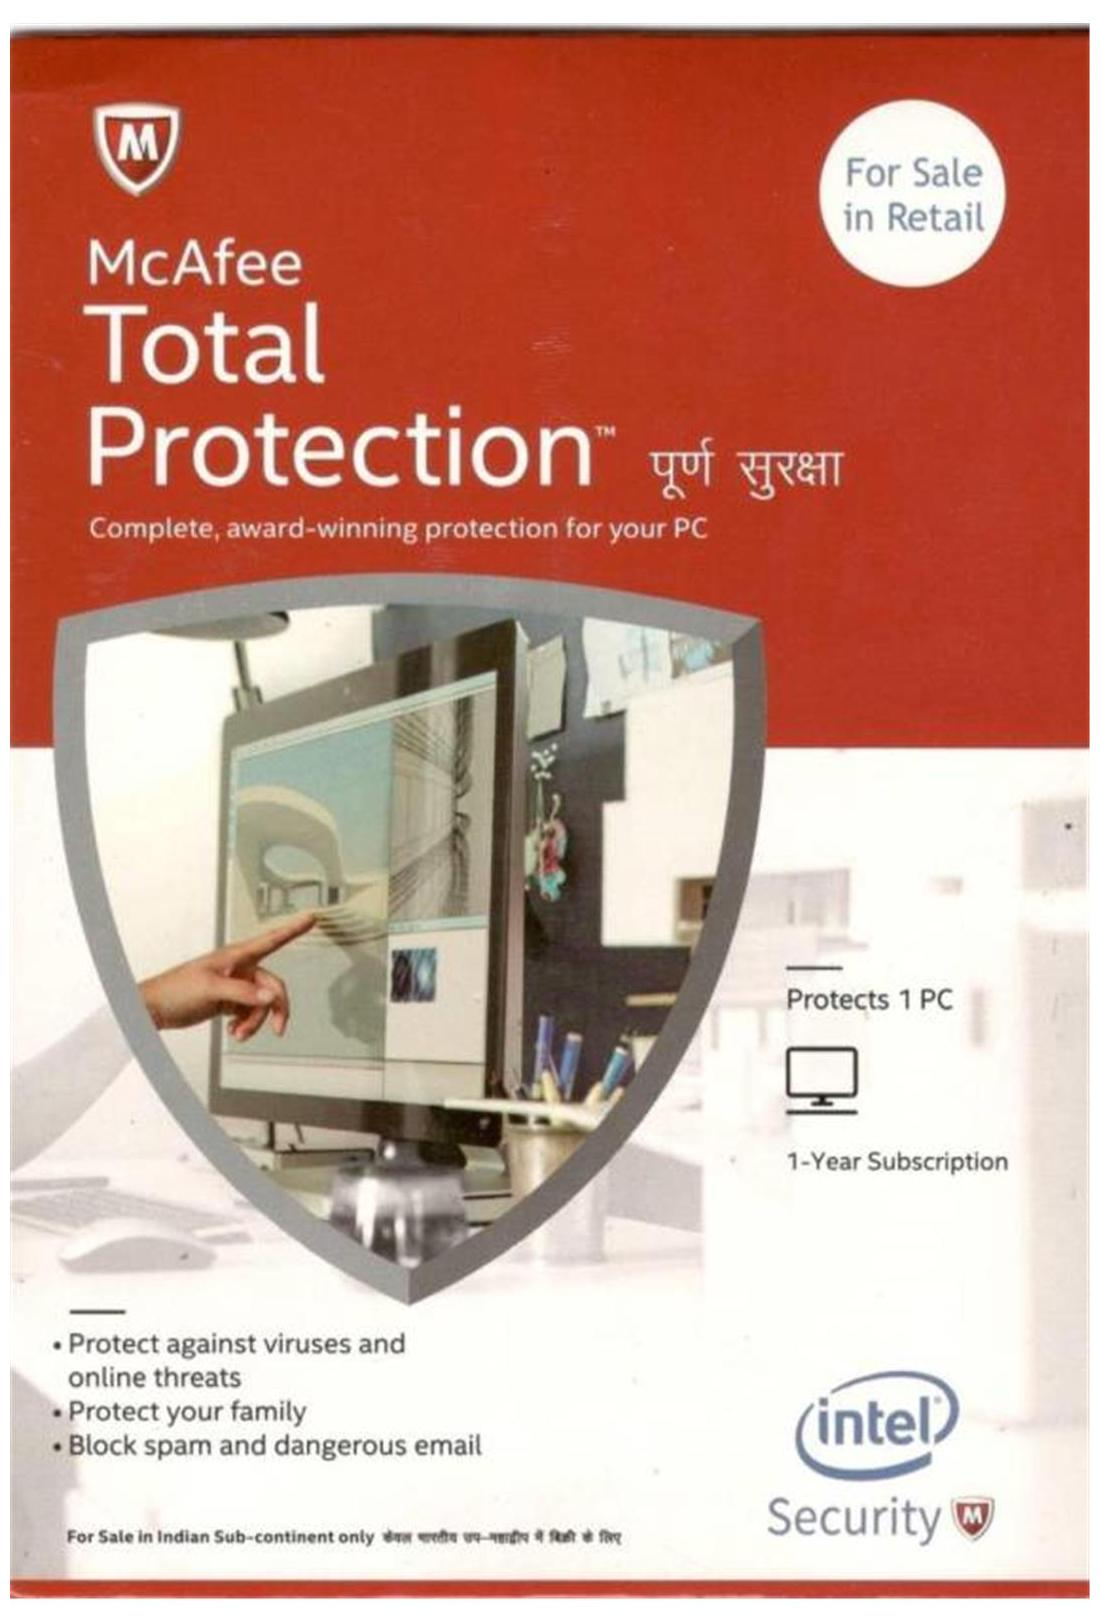 Mcafee Total Protection Latest Version 10 Pc 1 Year